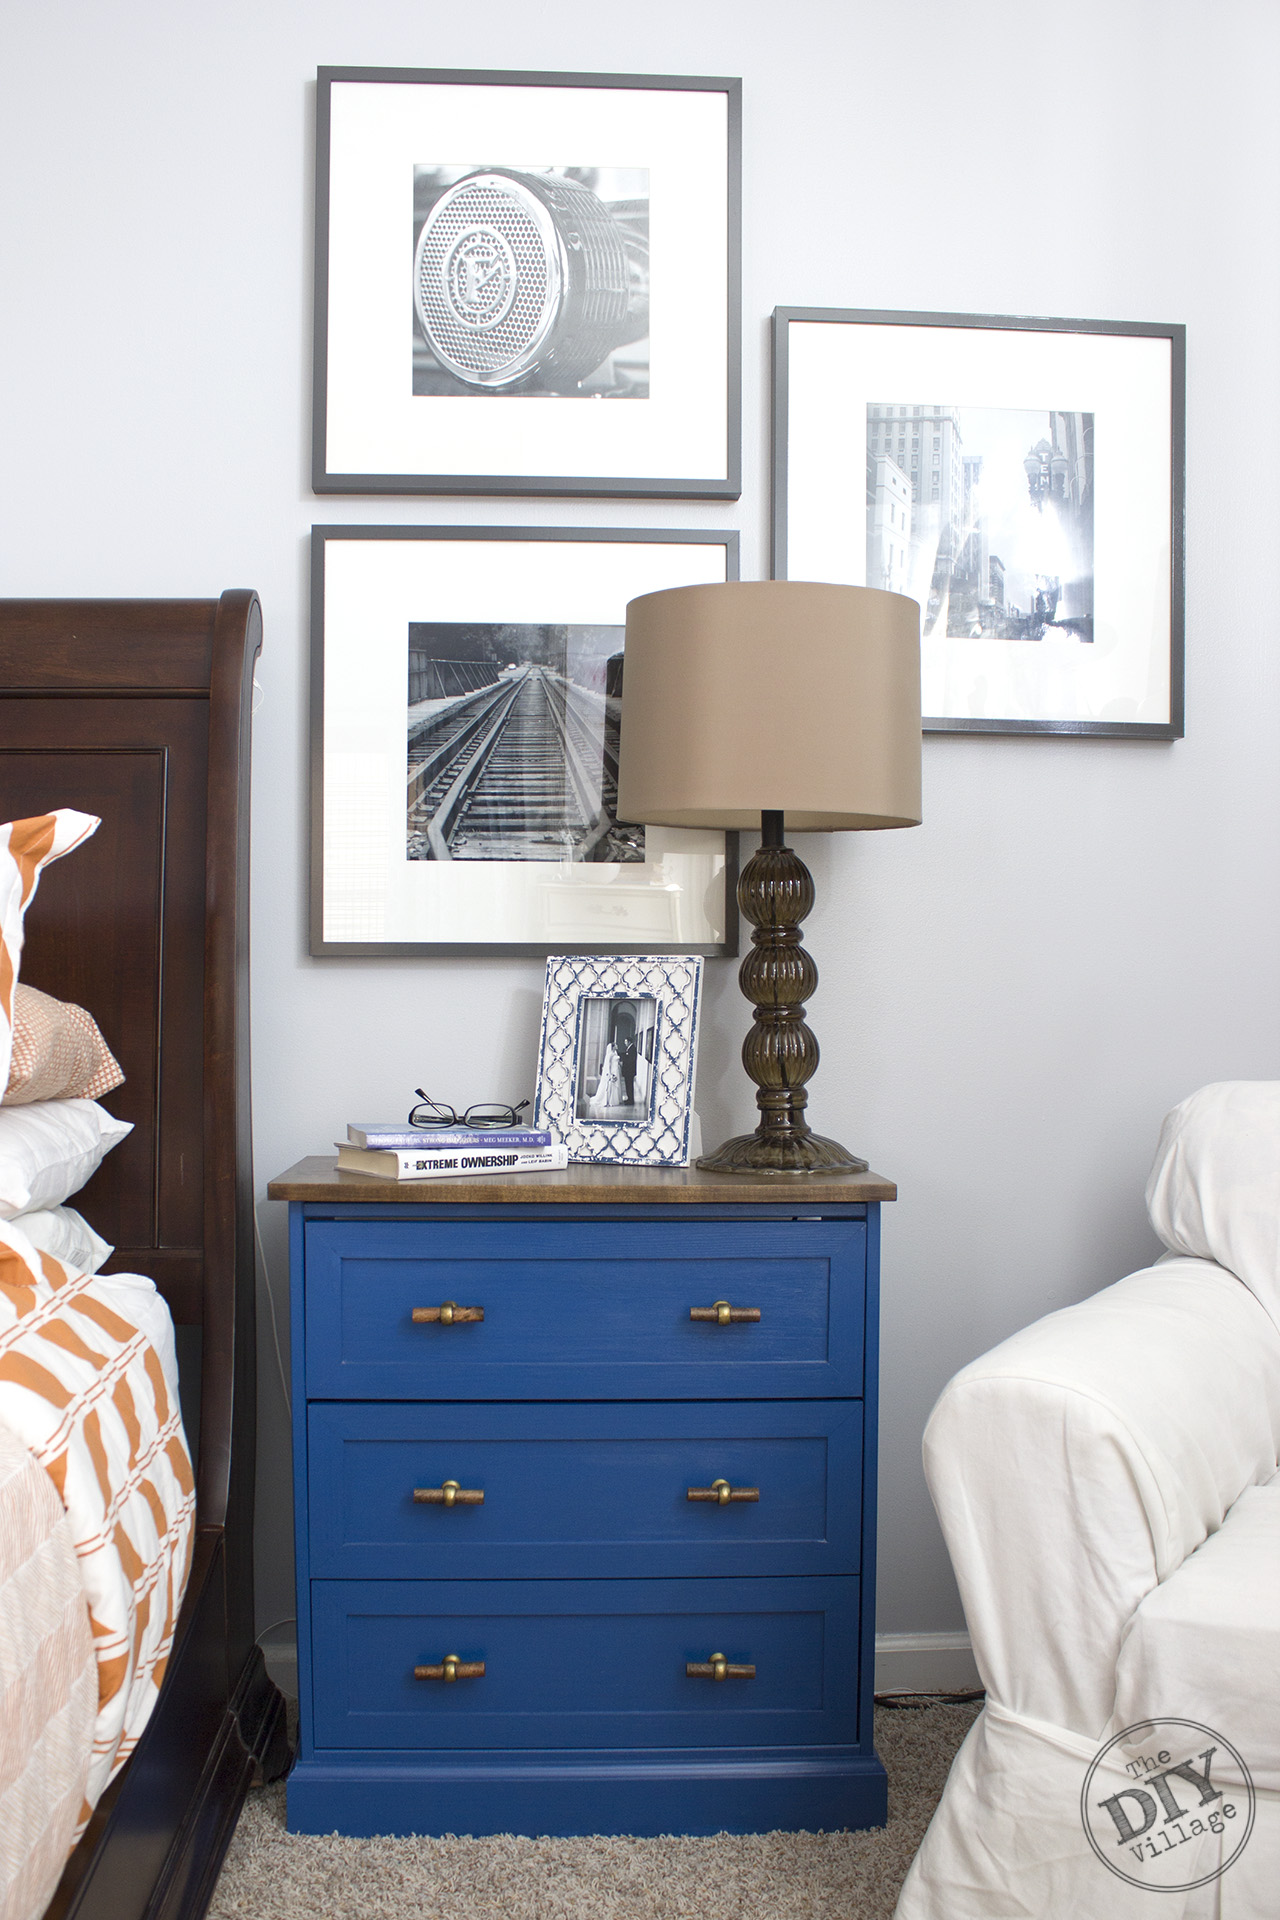 From Dresser to Nightstand - IKEA RAST Makeover - The DIY Village